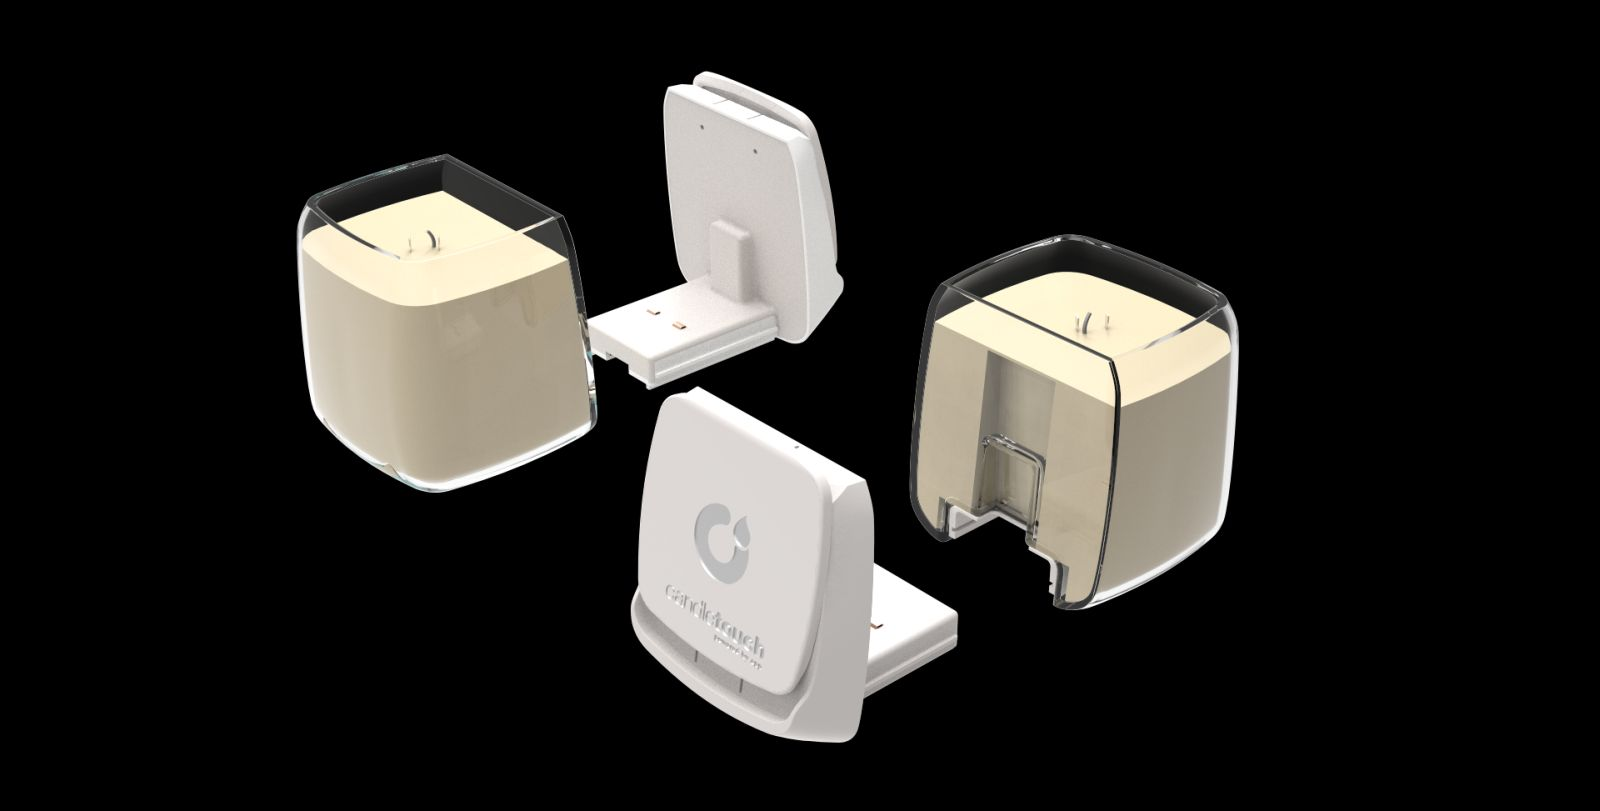 Here are the components of the device. Photo courtesy of Candle Touch